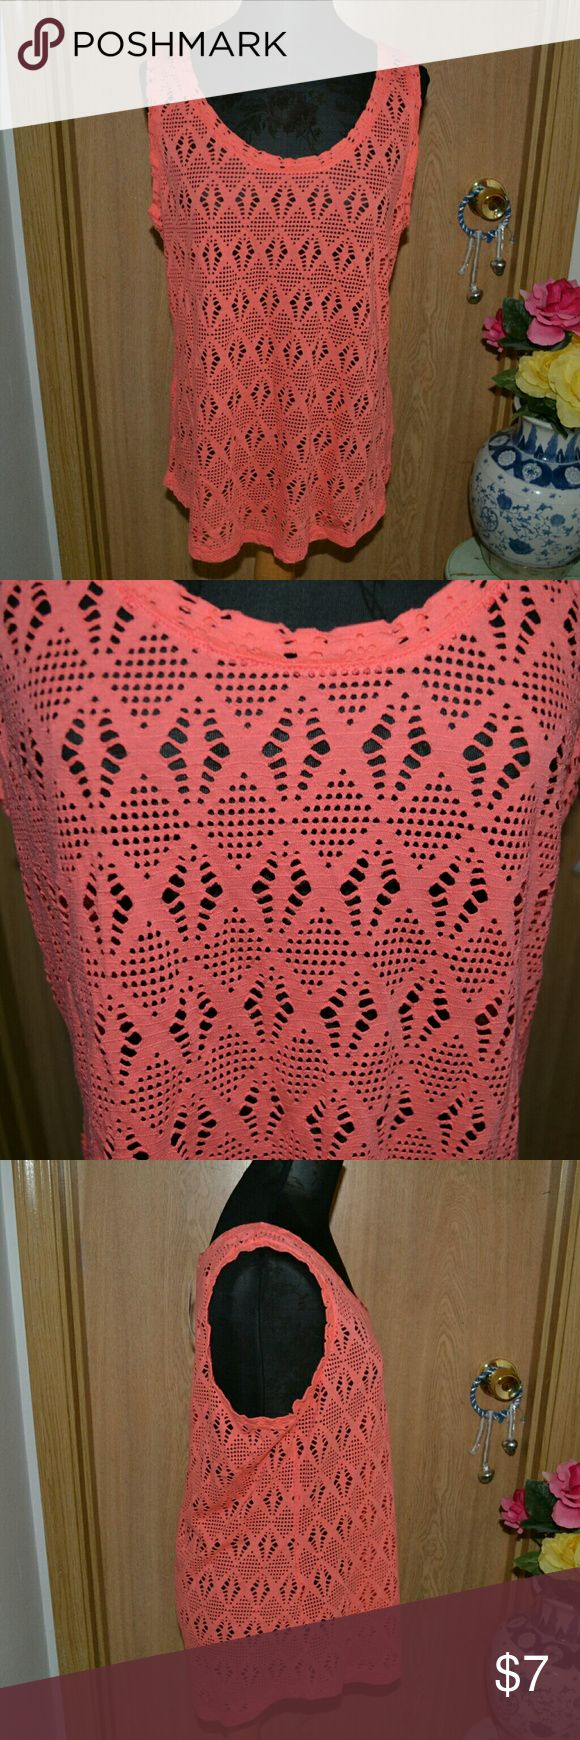 NWT! Old navy coral tank top PRICE IS FIRM!! Smoke free home! Buy 3 Get one FREE! I ship Monday - Friday! A super cute old navy coral tank top size large. Materials -60% cotton 40% modal. Perfect for summer & the beach ! Retails $16.94!! Old Navy Tops Tank Tops